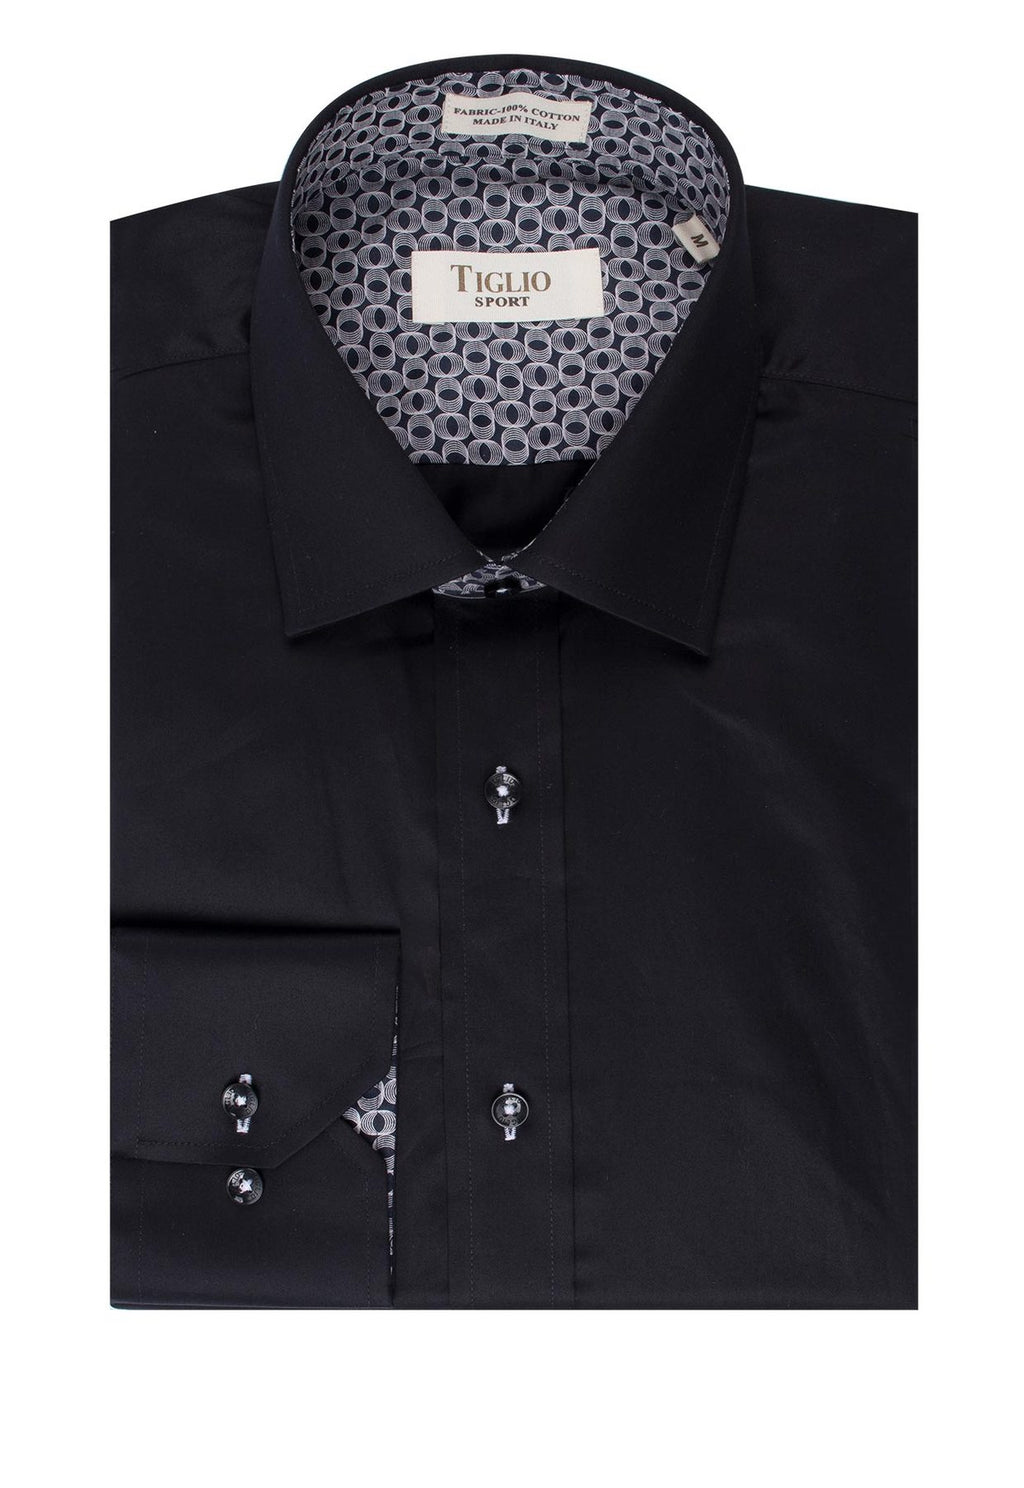 Tiglio Sport Black Sateen Modern Fit Sport Shirt 1063768